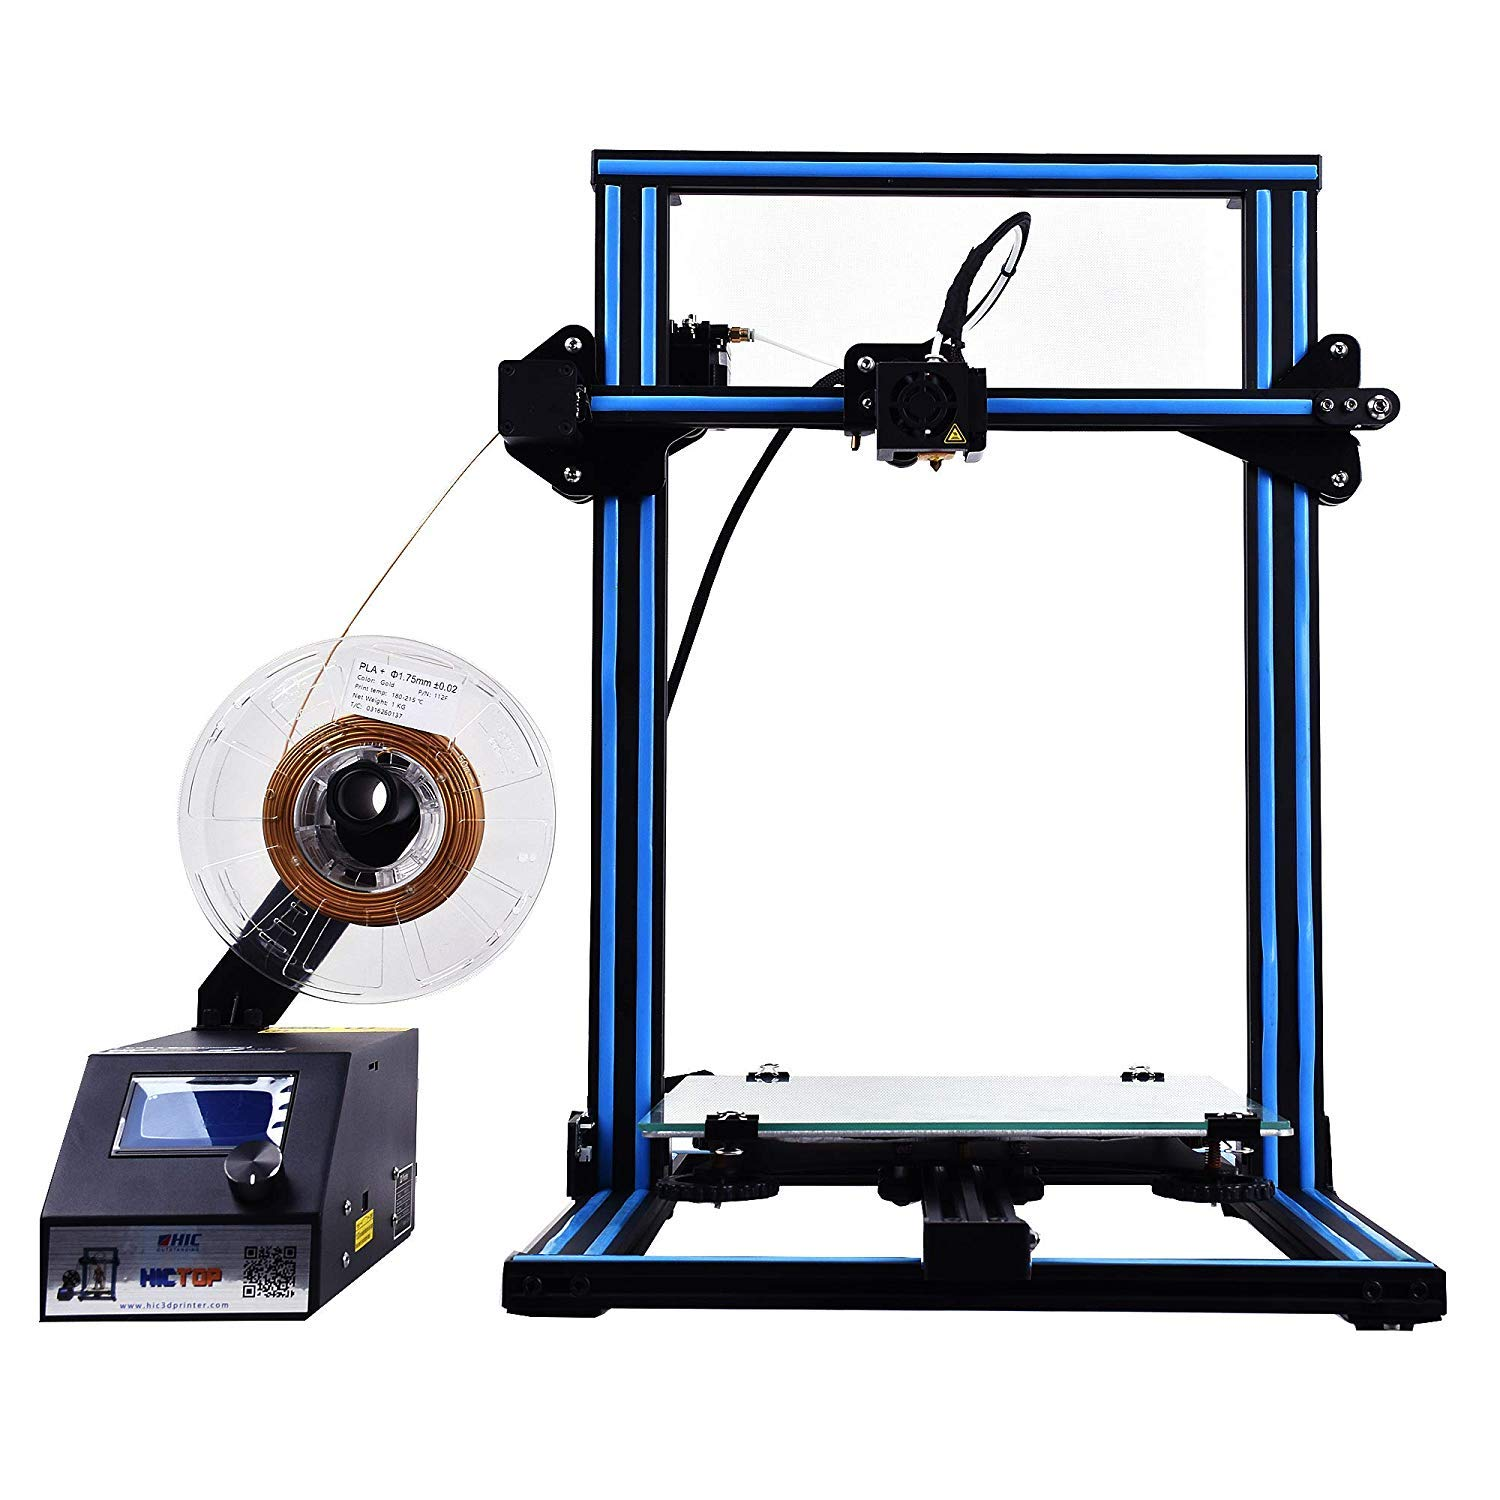 HICTOP Creality CR-10S 3D Printer Filament Monitor Dual Z axis Screw Rods 300x300x400mm